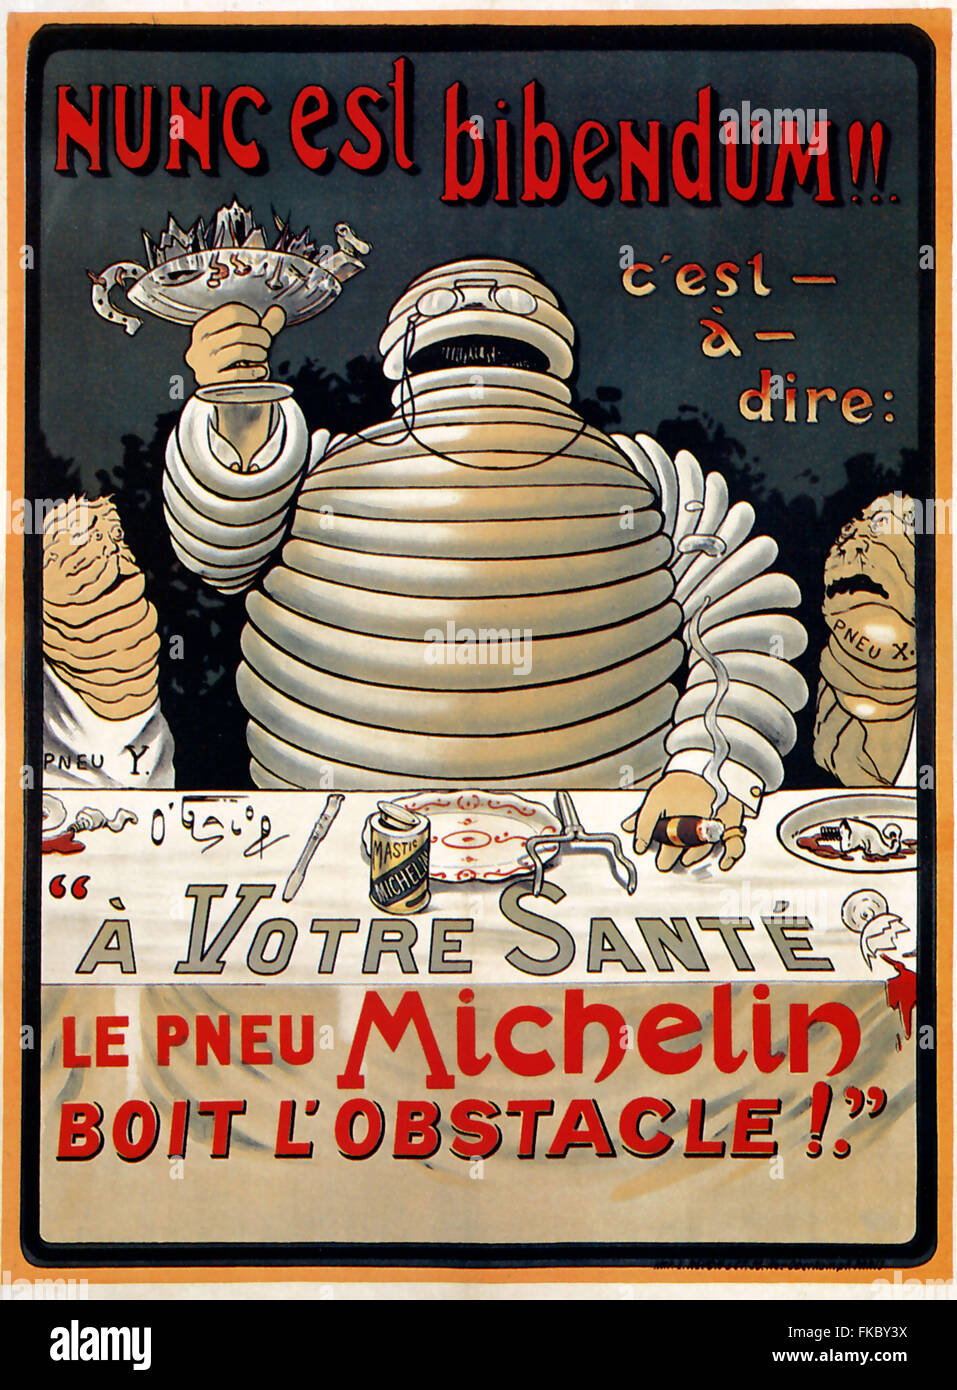 France Michelin Poster - Stock Image